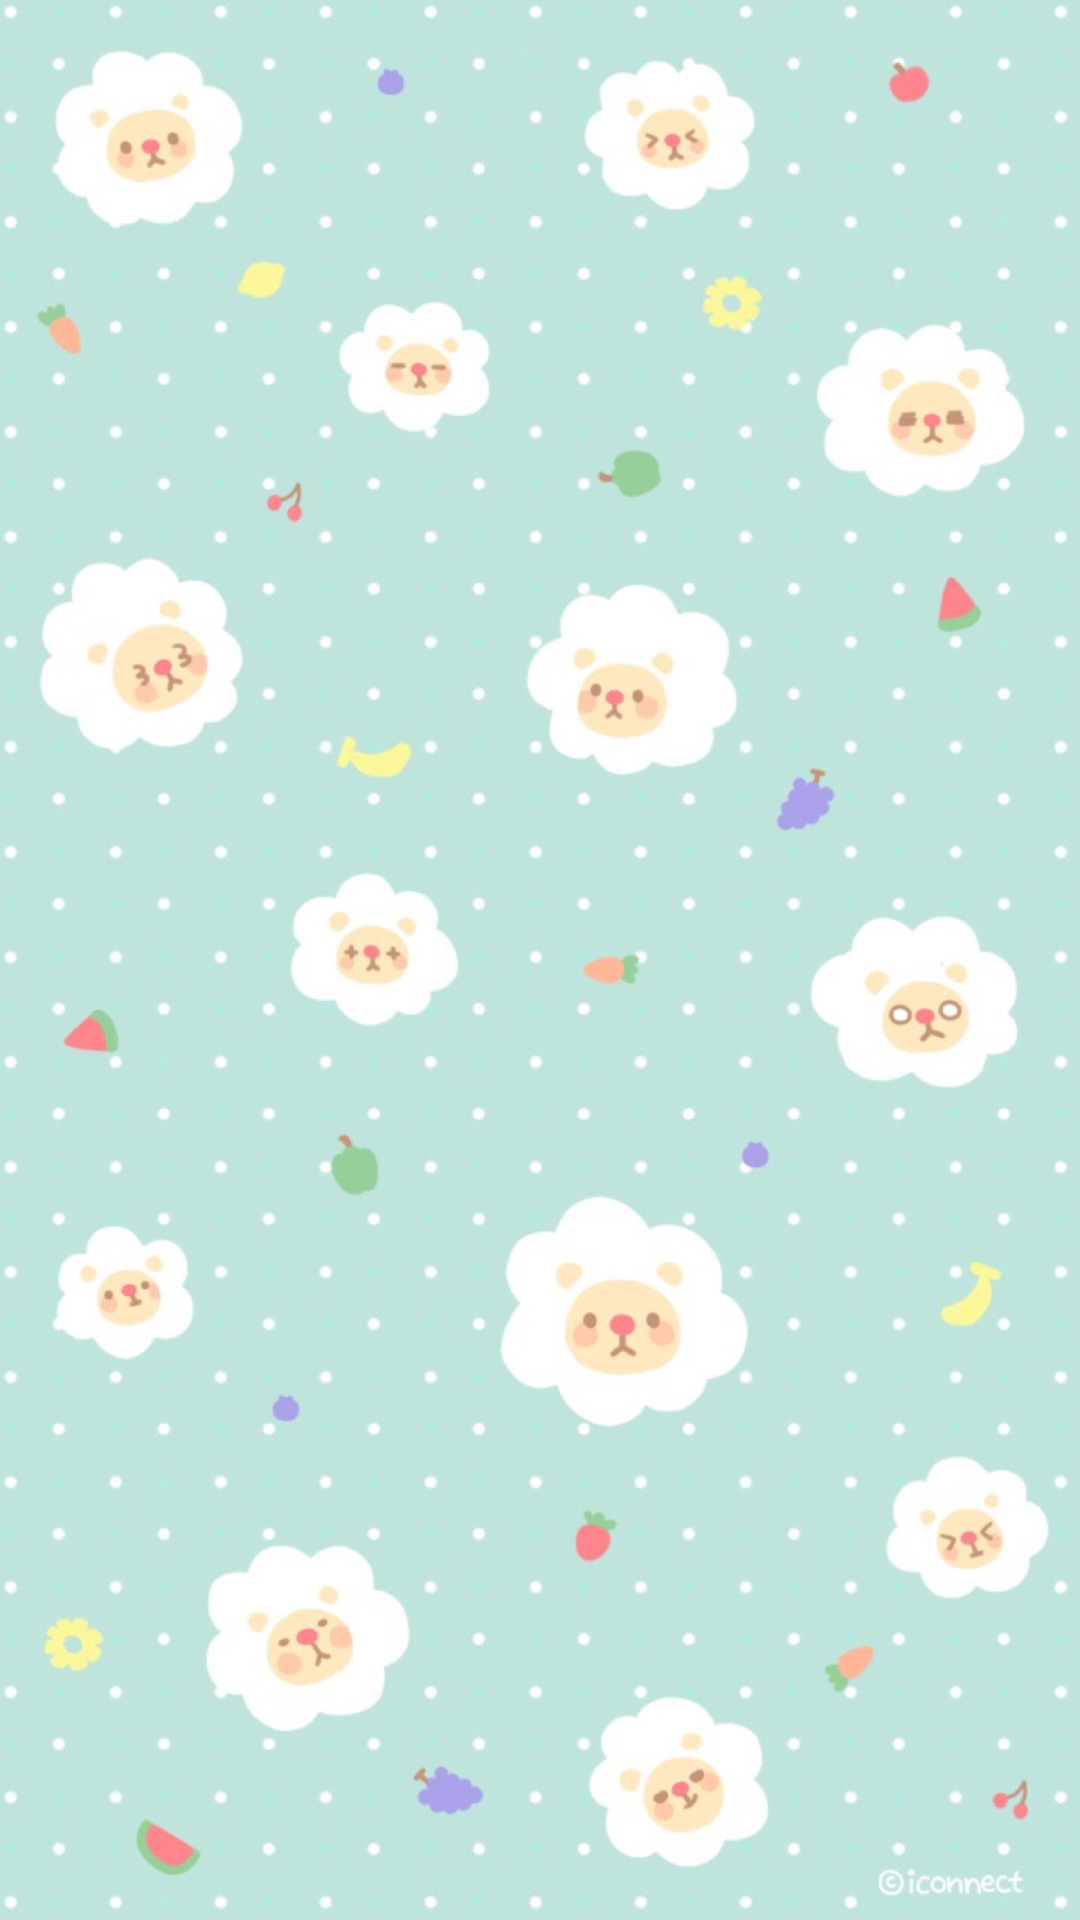 free cute phone wallpapers backgrounds pixelstalknet